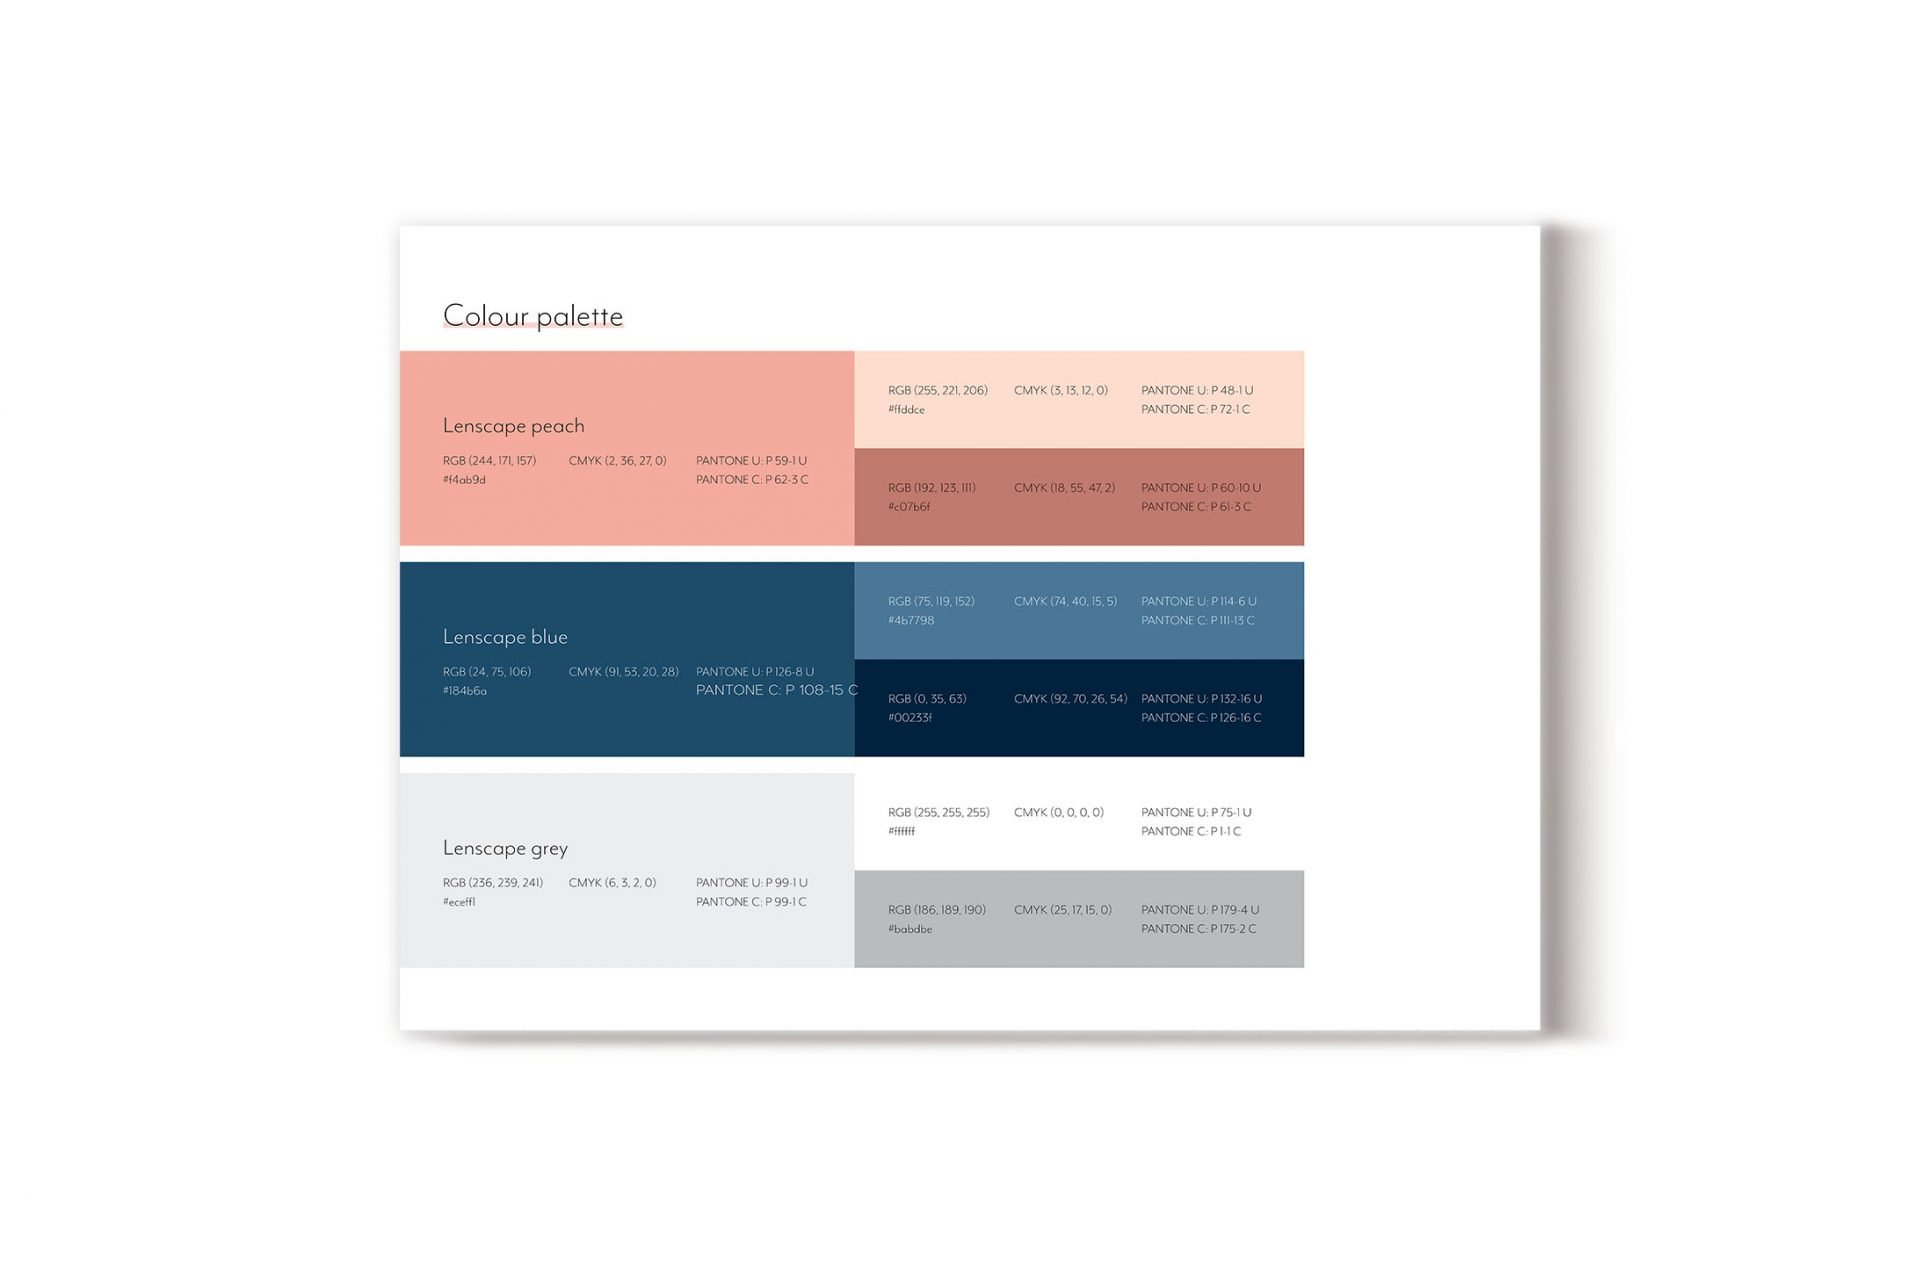 andrew tralongo how to create a brand style guide colour palette